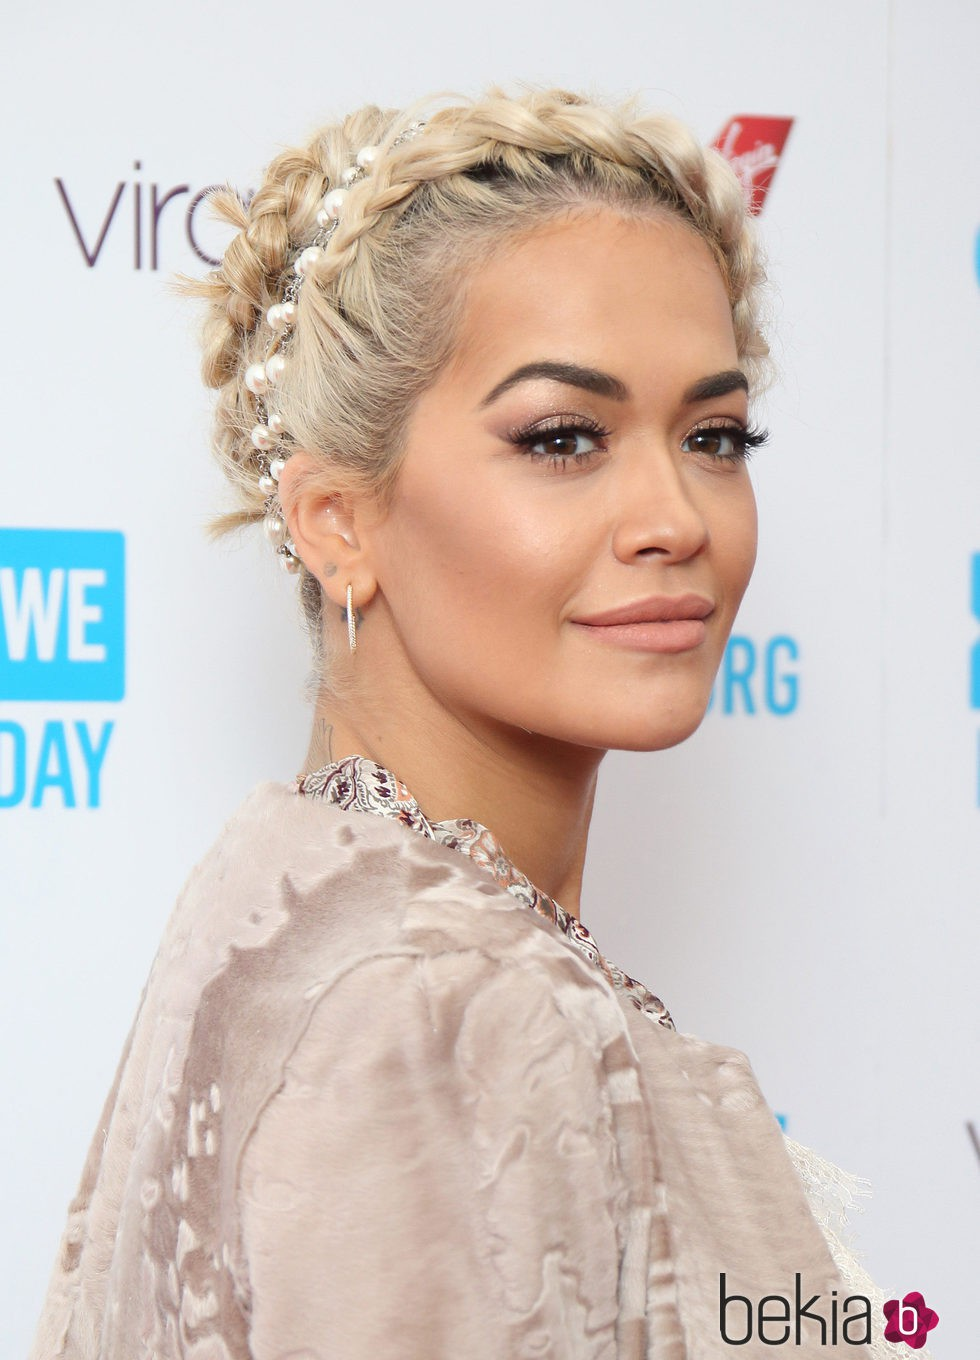 Rita Ora en el WE Day en 2016